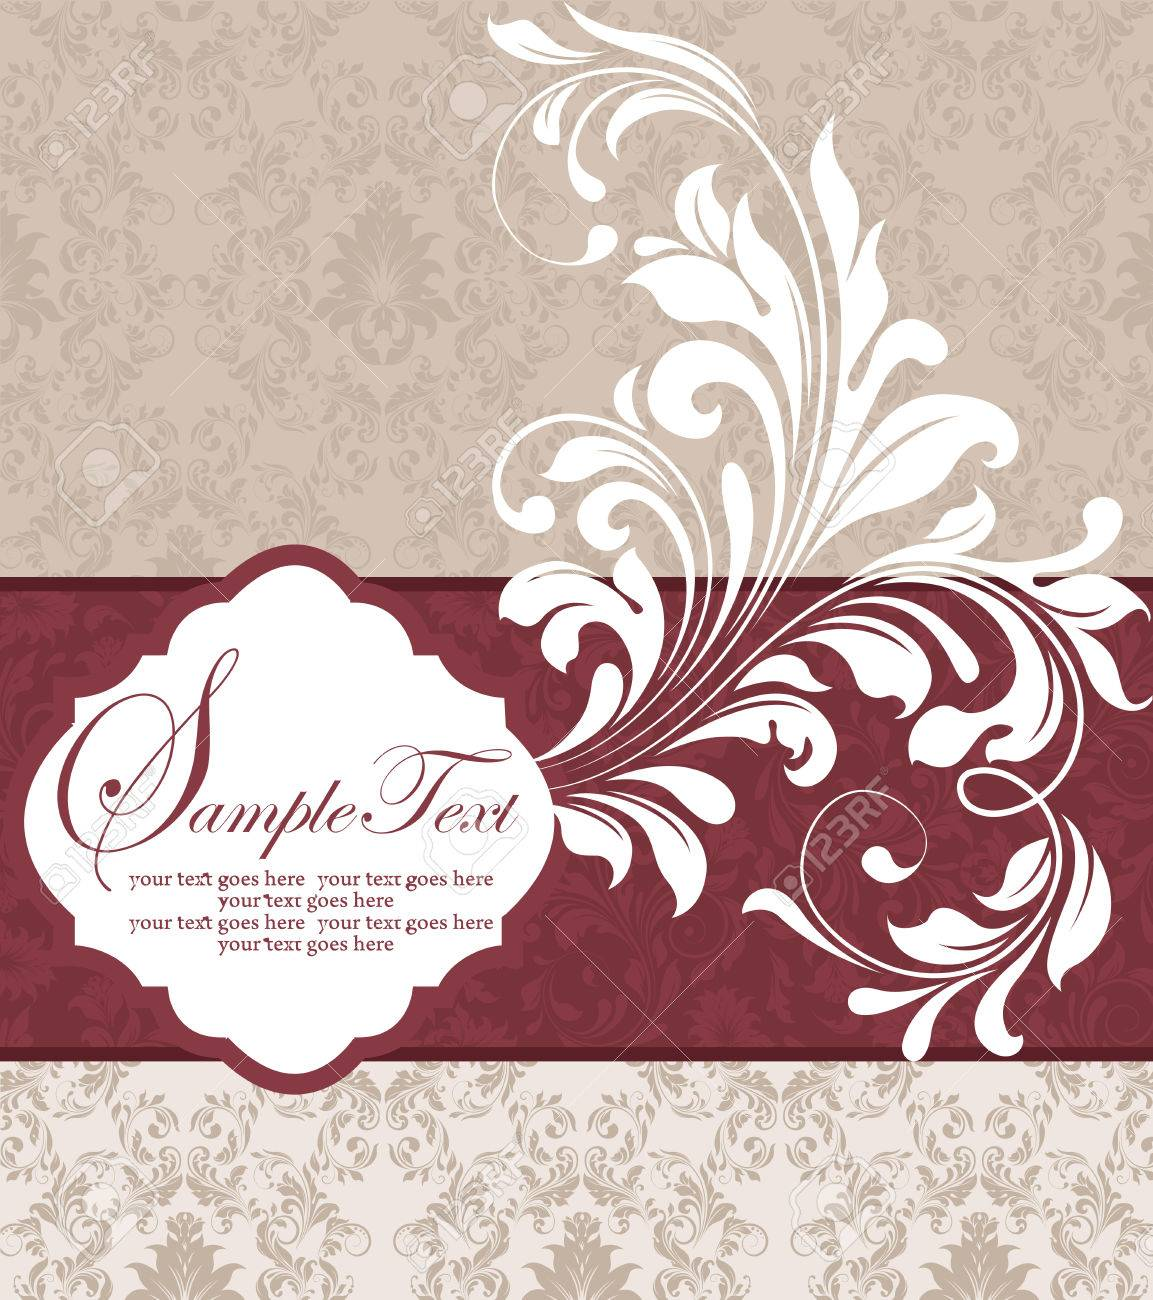 Vintage invitation card with ornate elegant abstract floral design imagens vintage invitation card with ornate elegant abstract floral design white flowers on gray and tan background with royal red ribbon vector stopboris Image collections